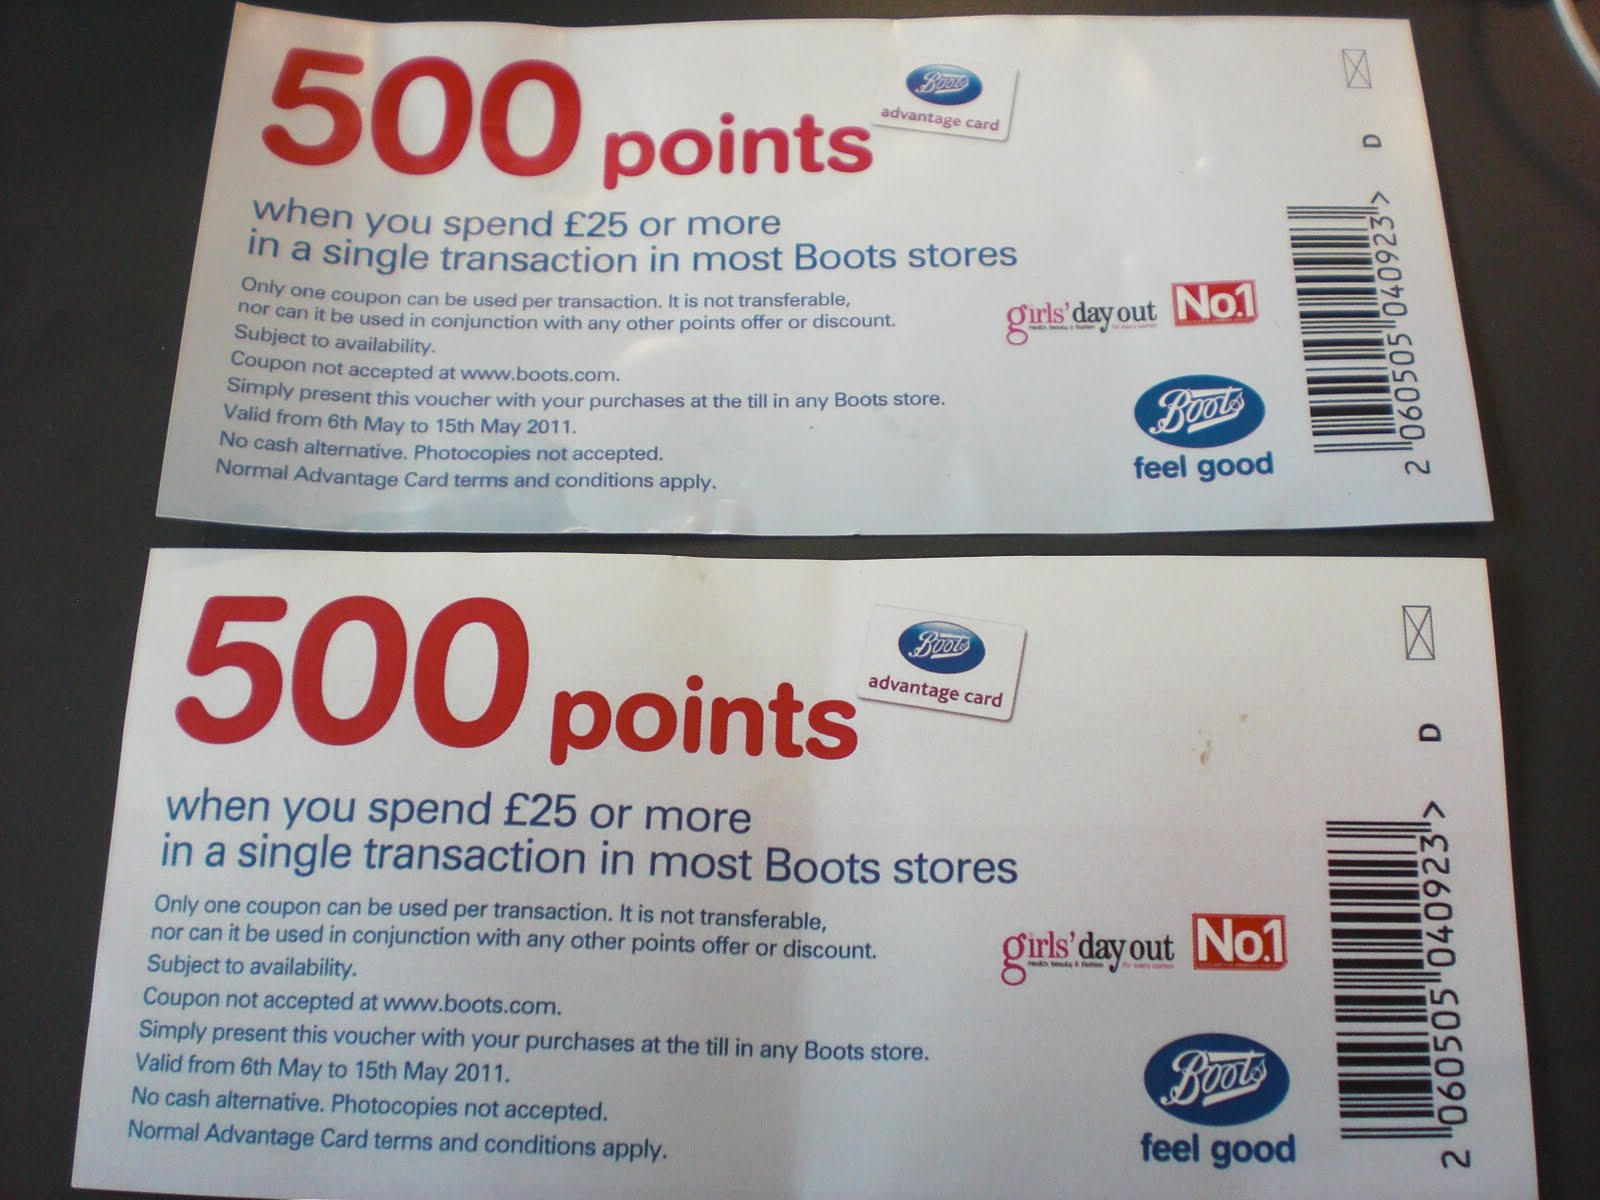 Boots stocks medicines, cosmetics, food and drink, electronics and plenty more essential items. All of these products can be purchased in-store using Boots Gift Cards or Customers can use discount codes at the Boots Online Store. All the best vouchers can be found on the Boots hotukdeals vouchers listings pages. How to redeem Boots vouchers.